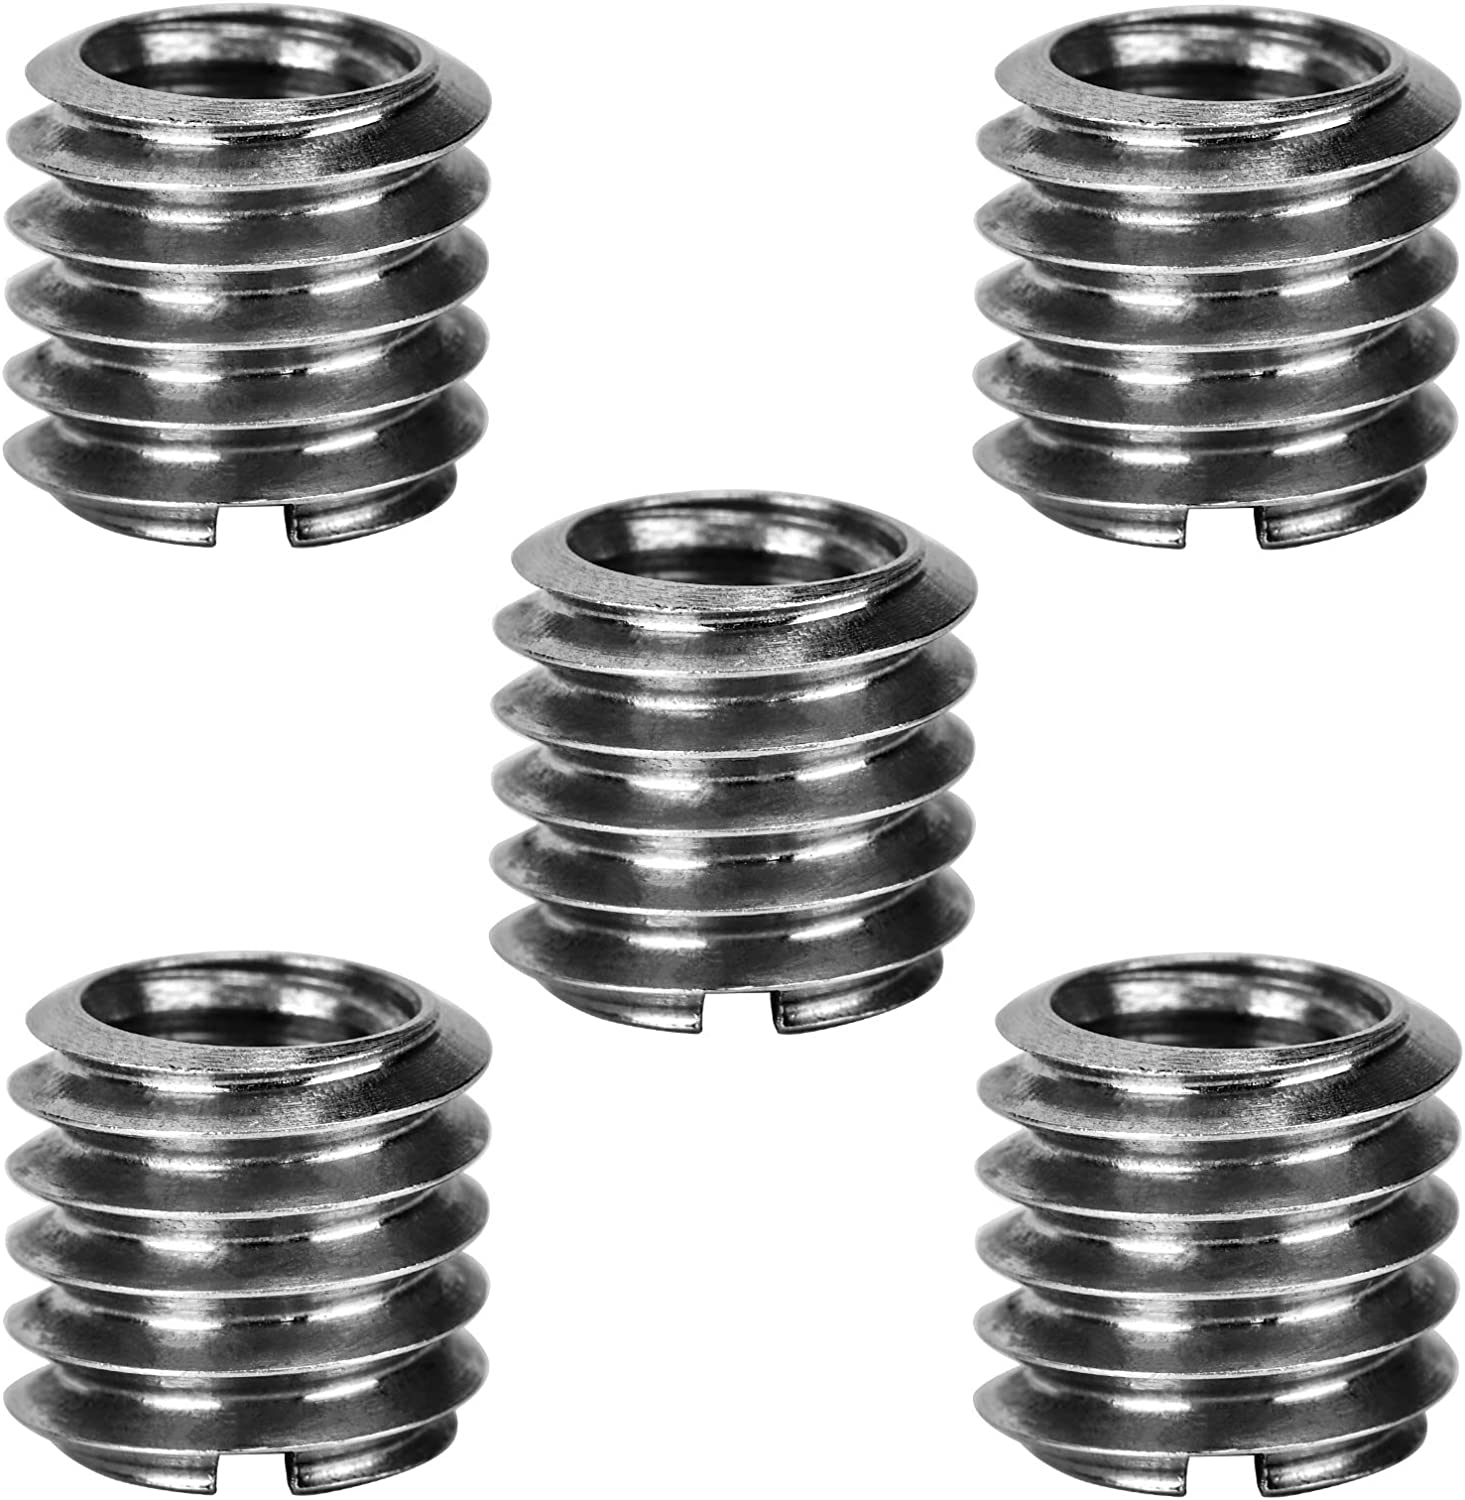 5 X Sunwayfoto Stainless Max 58% OFF Steel Slotted Post Tr 3 1 4